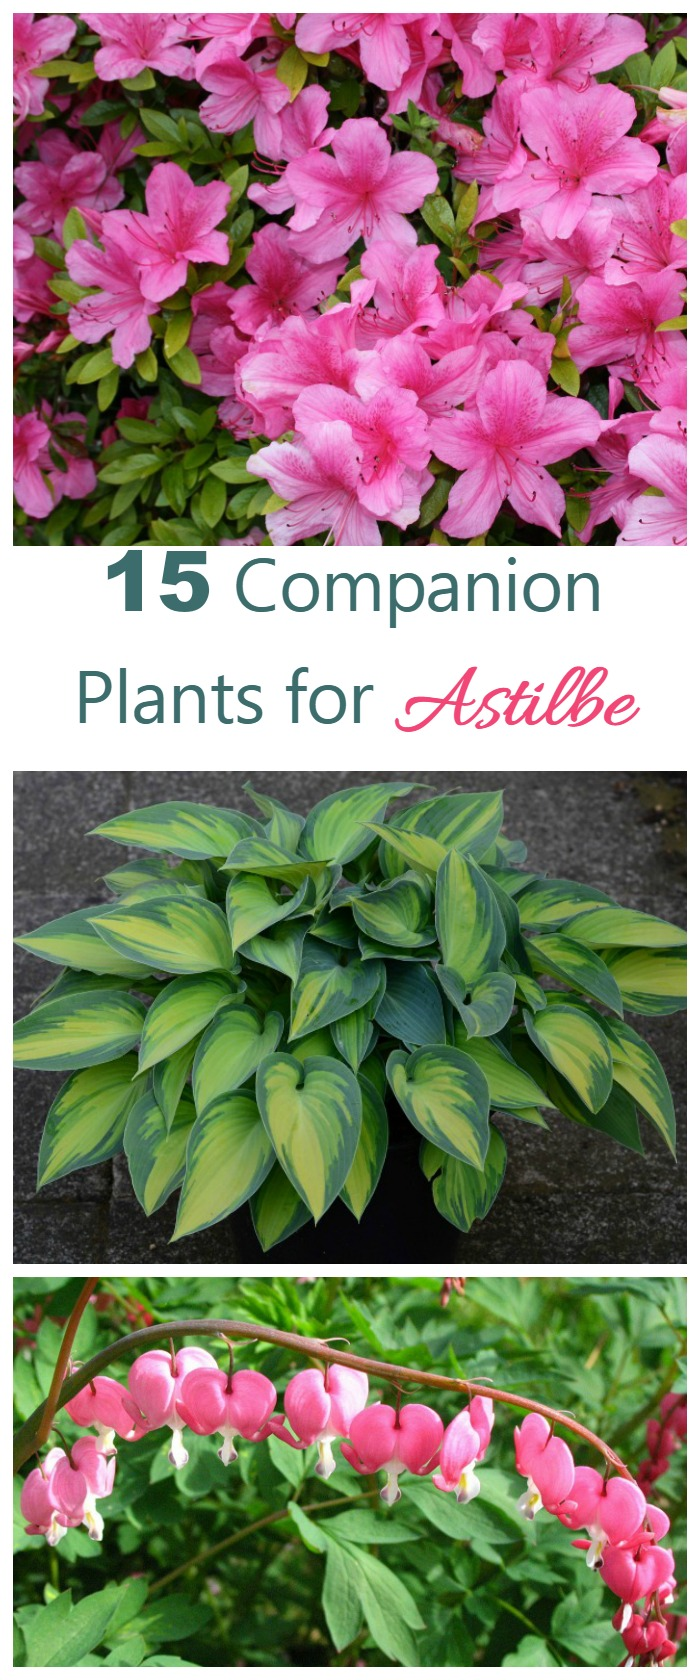 Astilbe Companion Plants What To Grow With Astilbe The Gardening